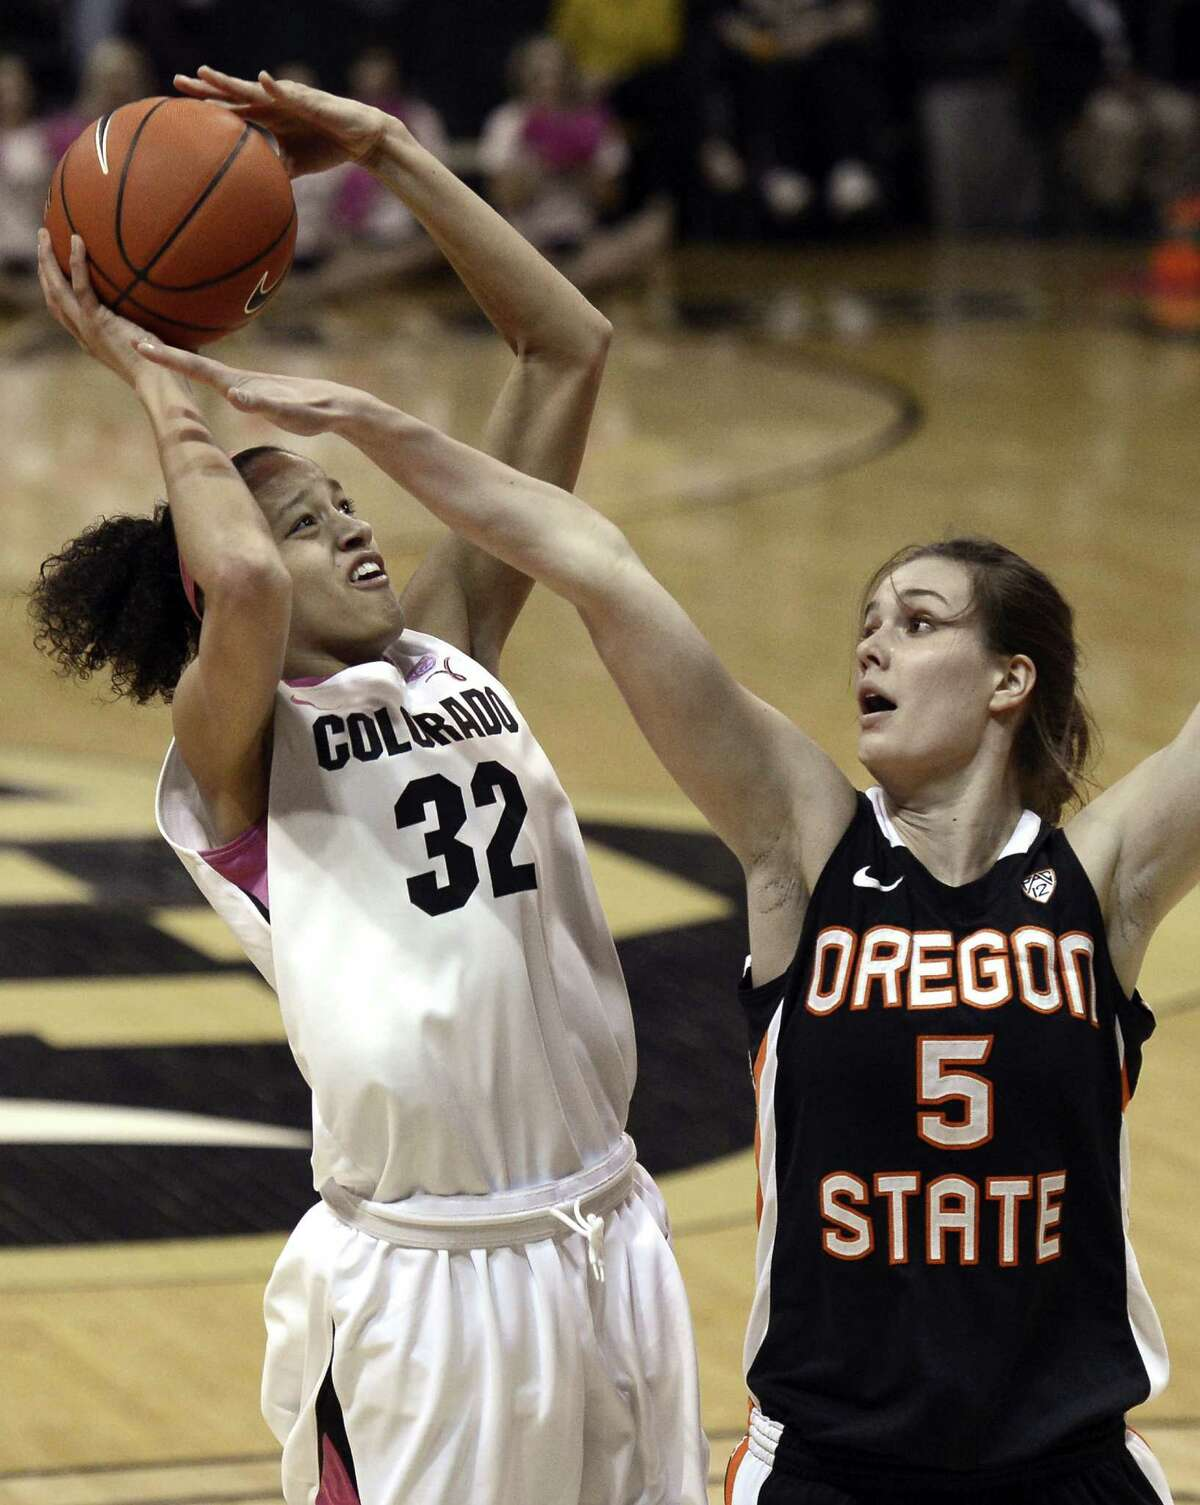 Colorado's Arielle Roberson takes a shot over Oregon State's Samantha Siegner during an NCAA college basketball game Friday, Feb. 8, 2013 in Boulder, Colo. (AP Photo/Daily Camera, Jeremy Papasso)